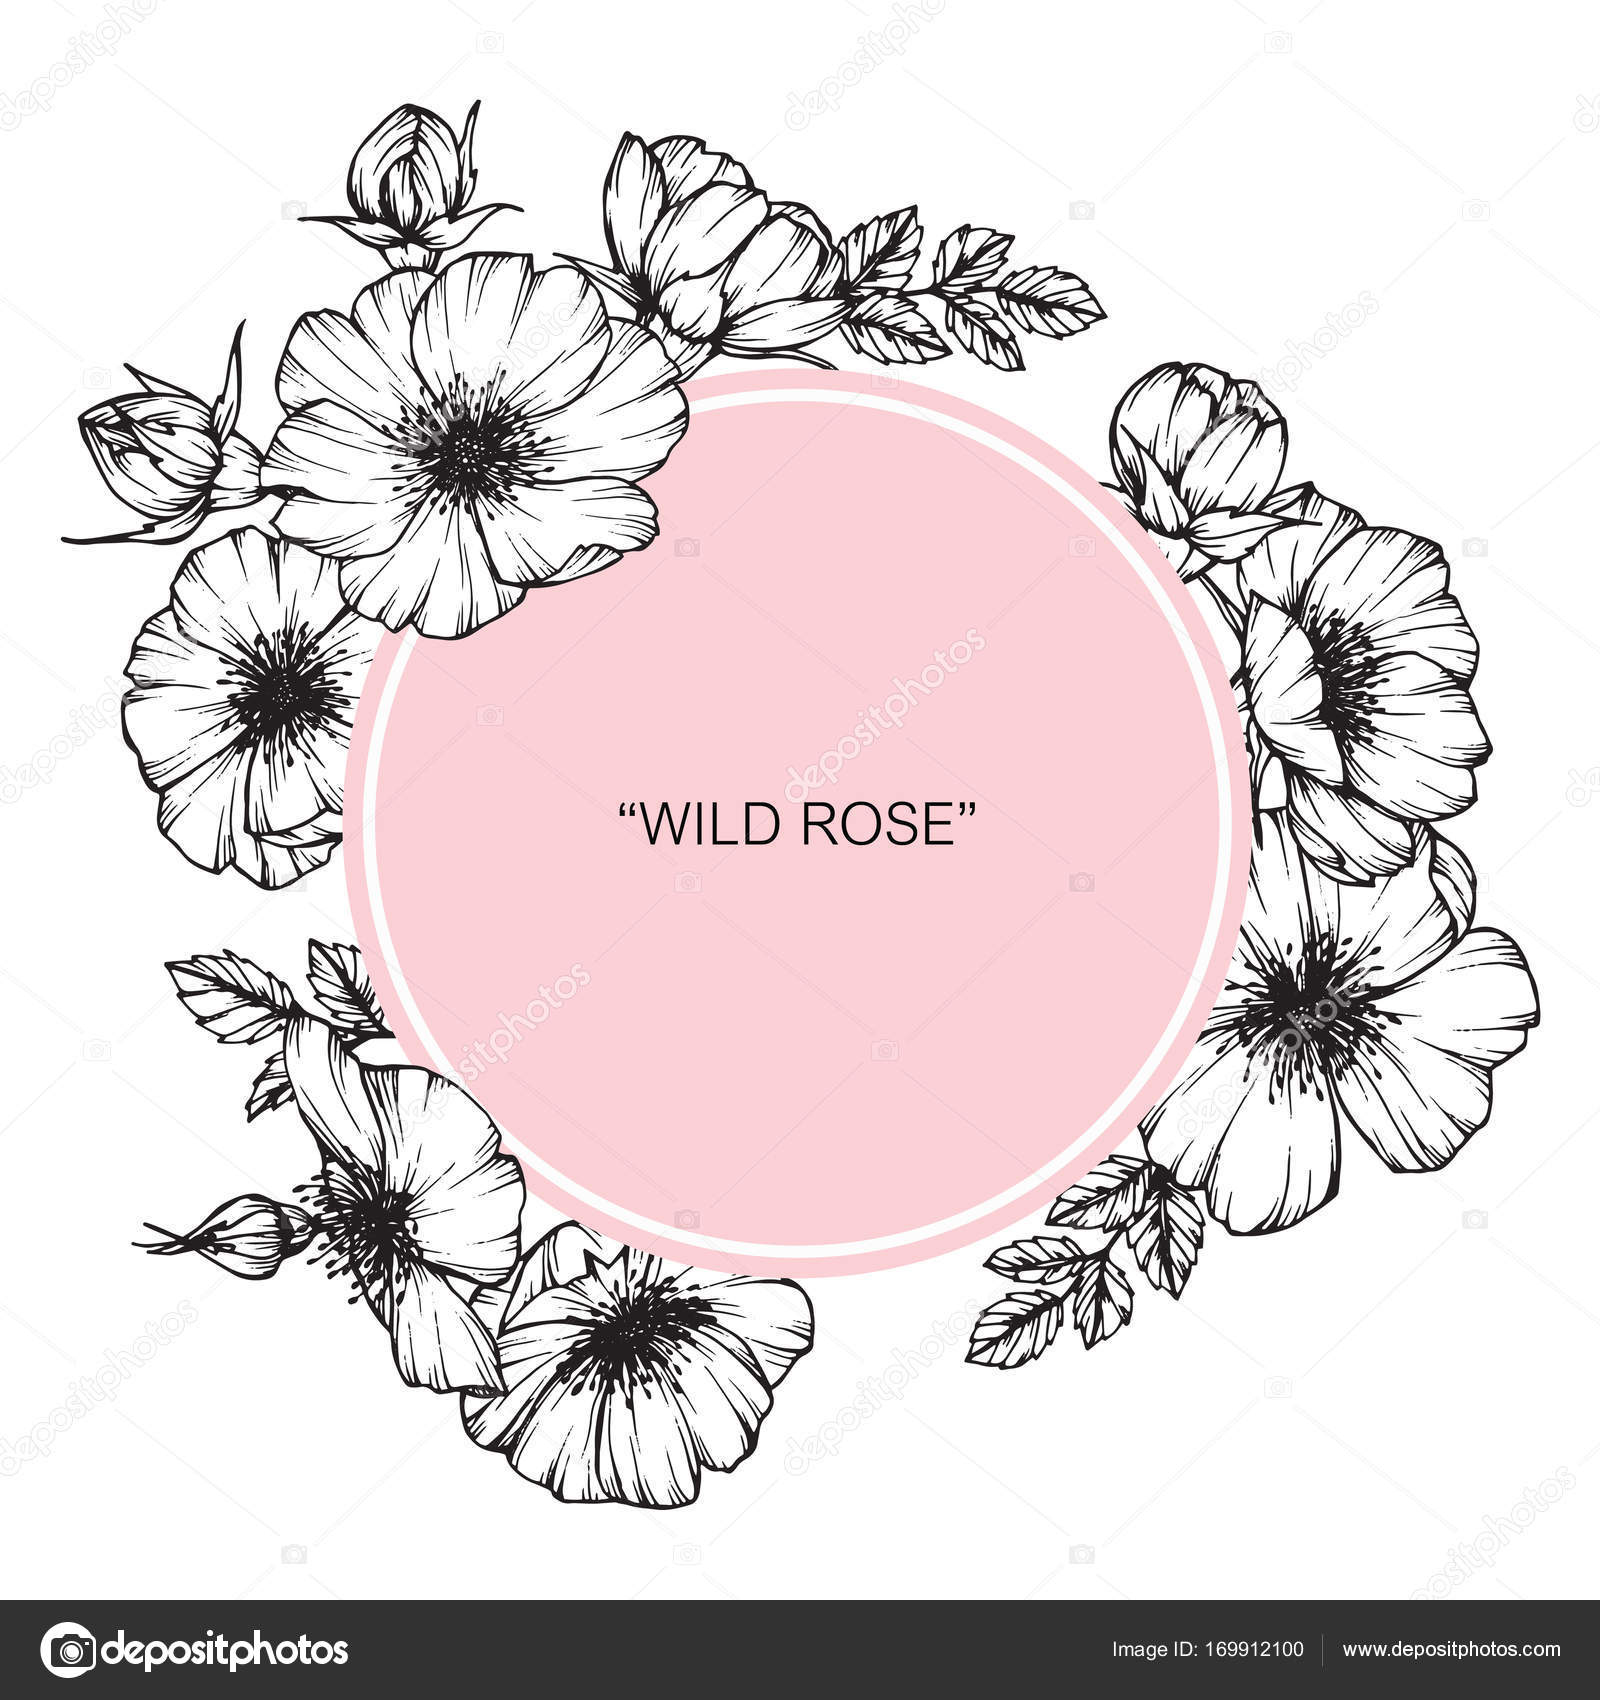 Flower Circle Drawing At GetDrawings.com | Free For Personal Use Flower Circle Drawing Of Your ...